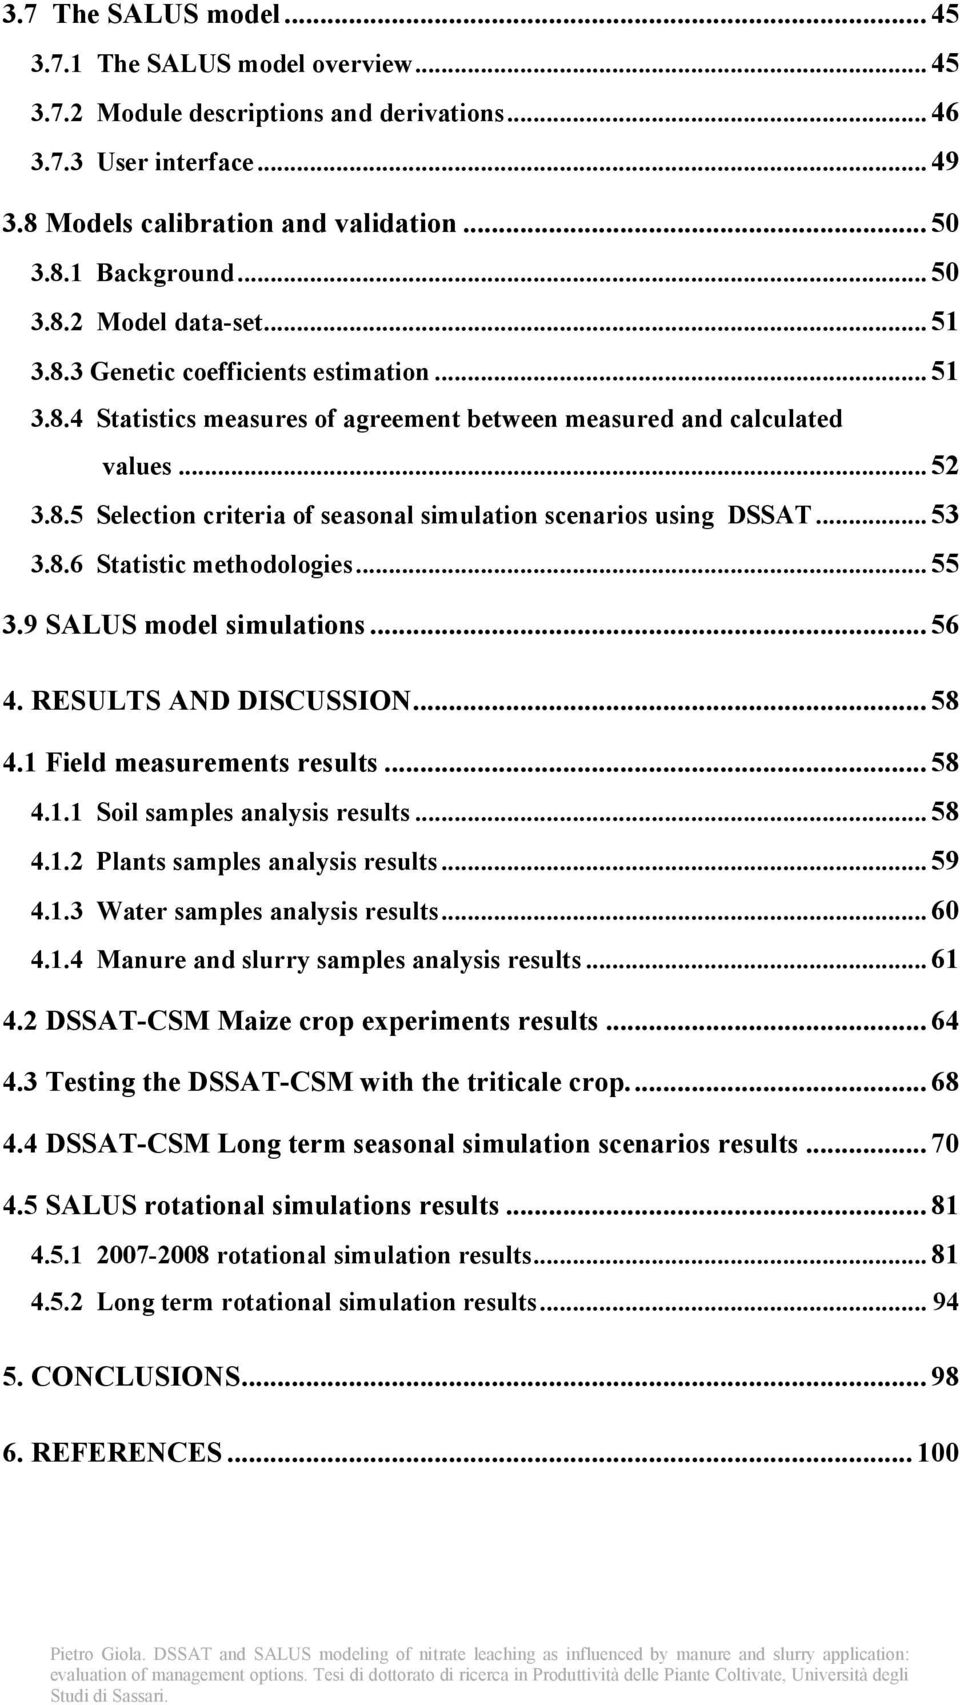 .. 53 3.8.6 Statistic methodologies... 55 3.9 SALUS model simulations... 56 4. RESULTS AND DISCUSSION... 58 4.1 Field measurements results... 58 4.1.1 Soil samples analysis results... 58 4.1.2 Plants samples analysis results.